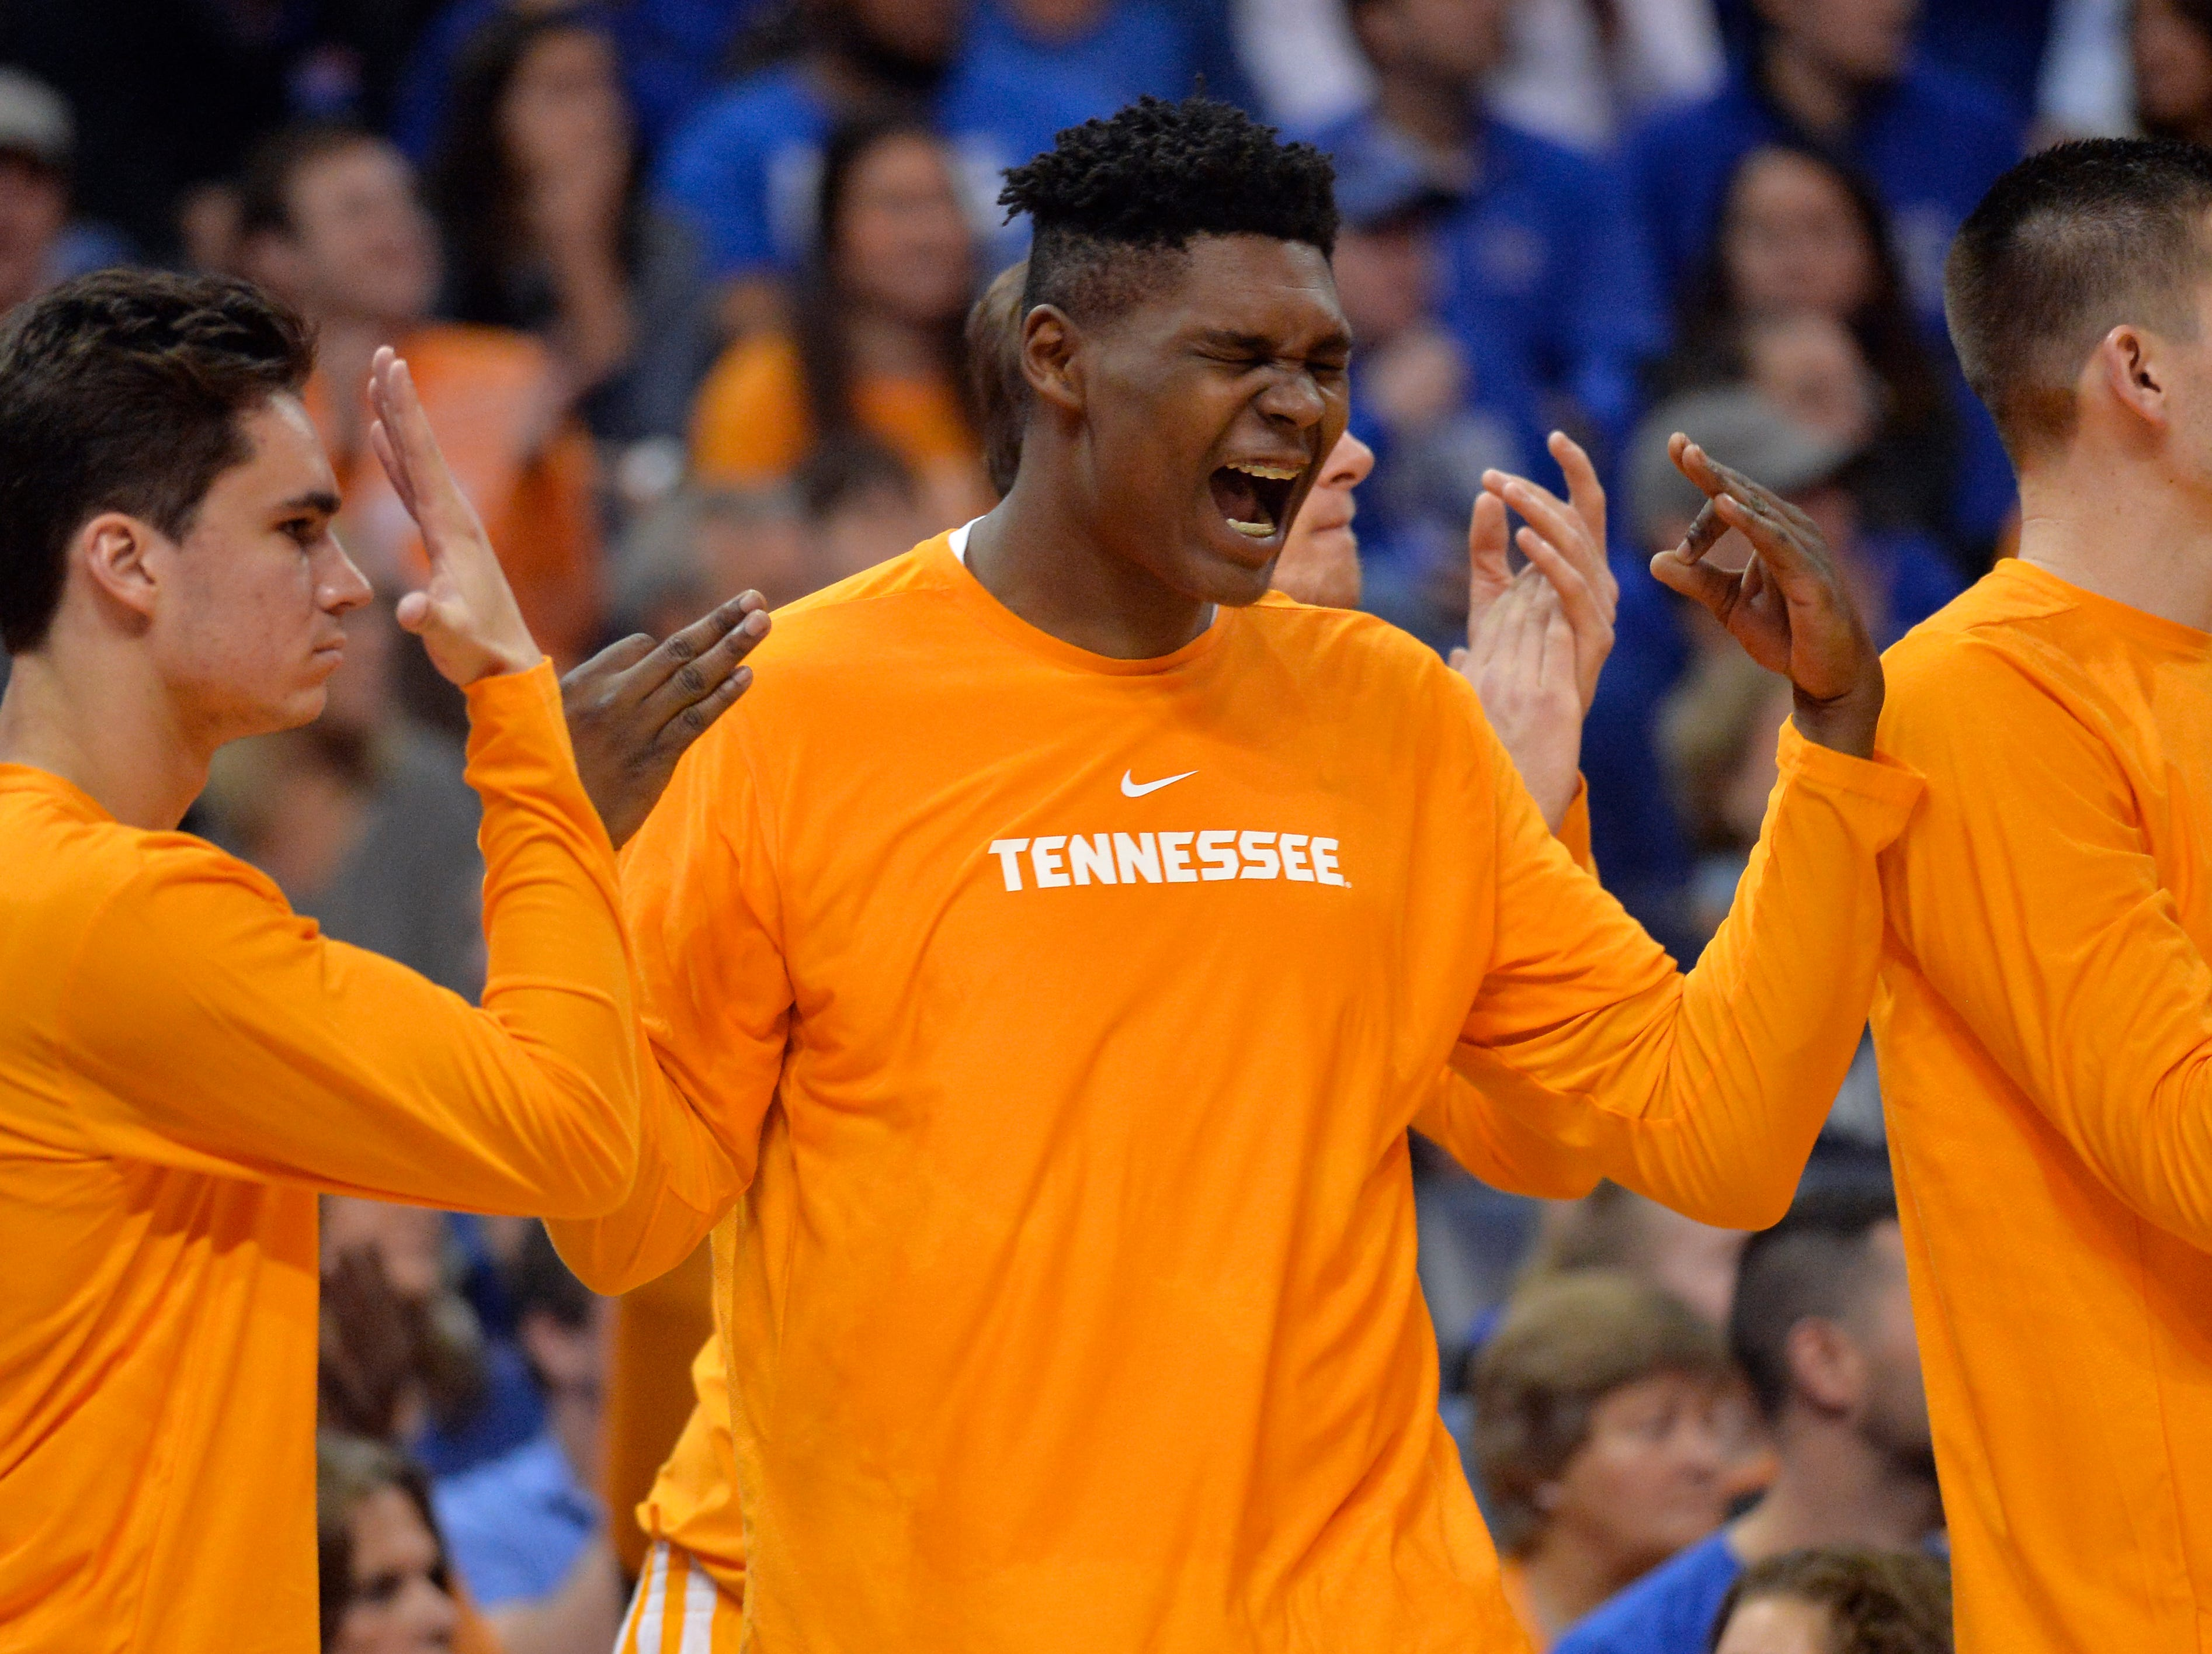 Tennessee forward D.J. Burns, center, reacts from the sideline in the first half of an NCAA college basketball game against Memphis Saturday, Dec. 15, 2018, in Memphis, Tenn.